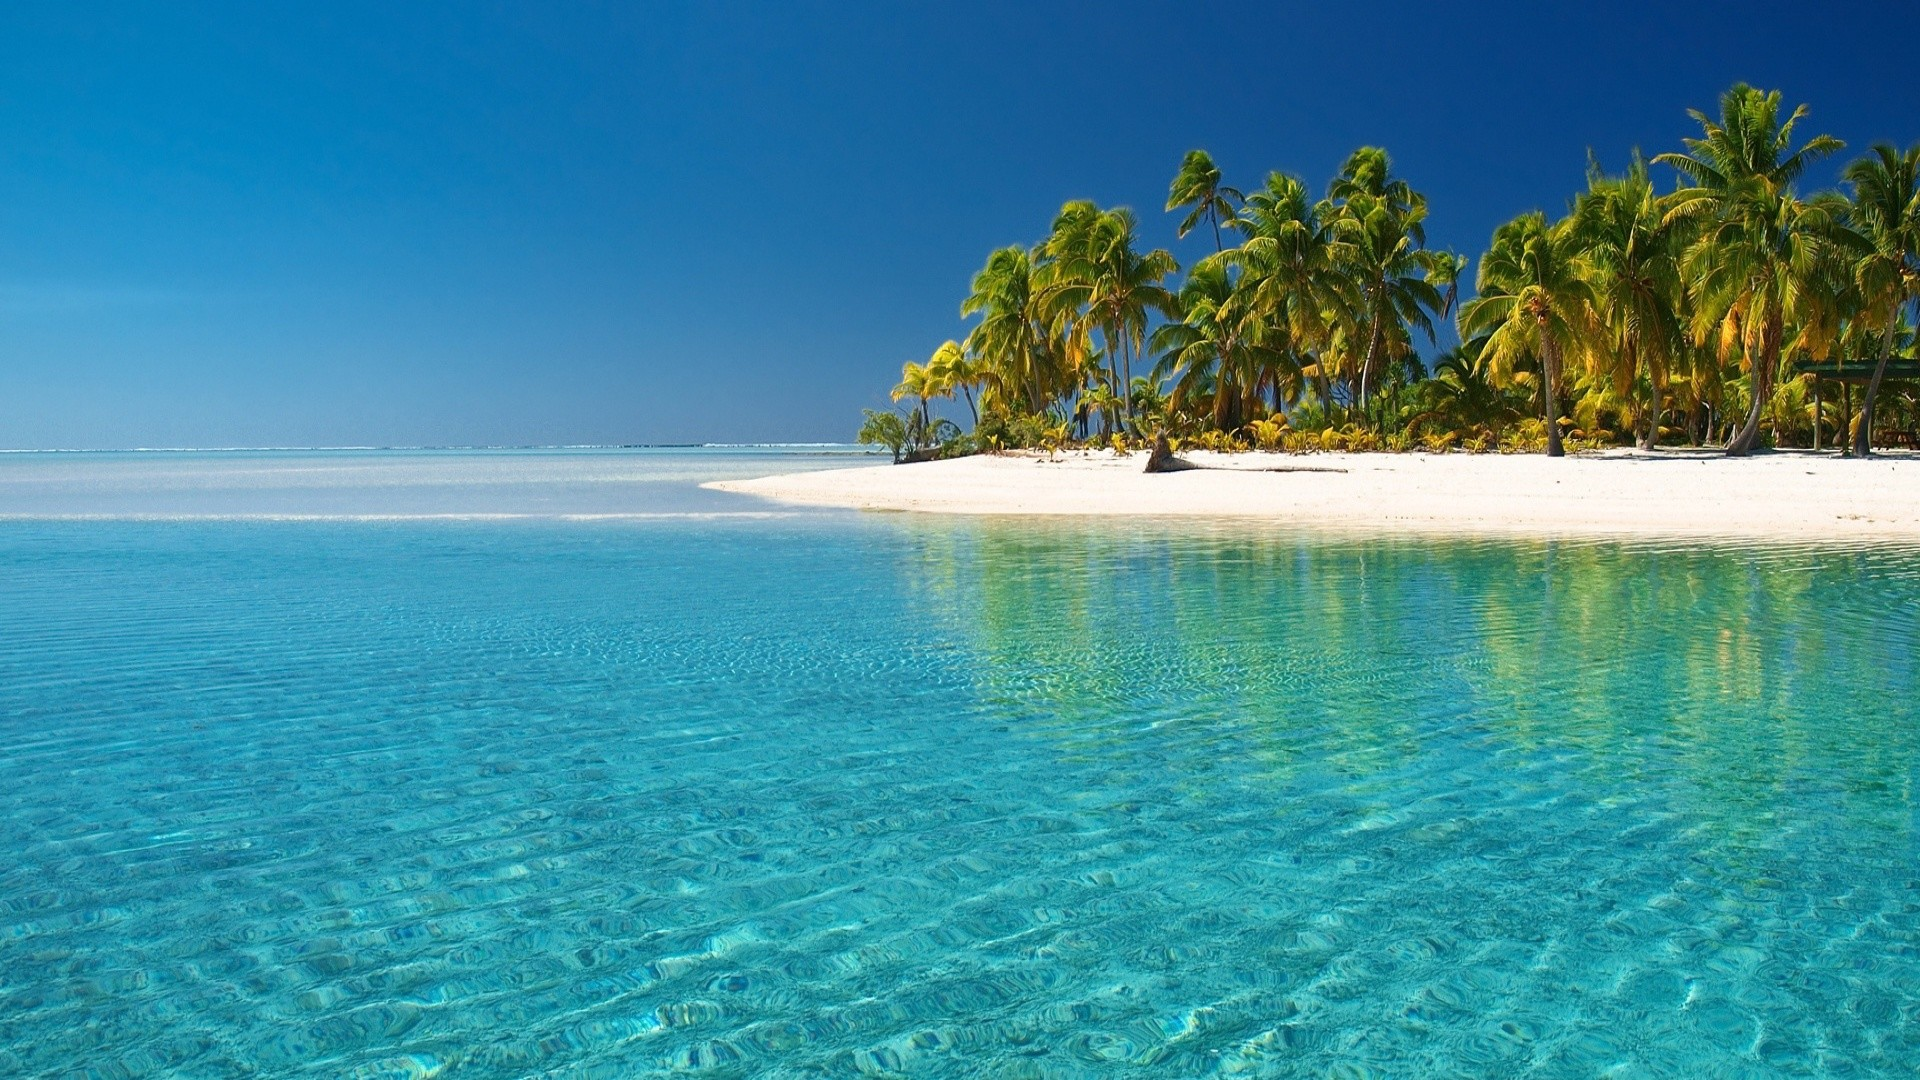 wallpapers   above is Crystal Clear Beach Wallpaper in Resolution  .